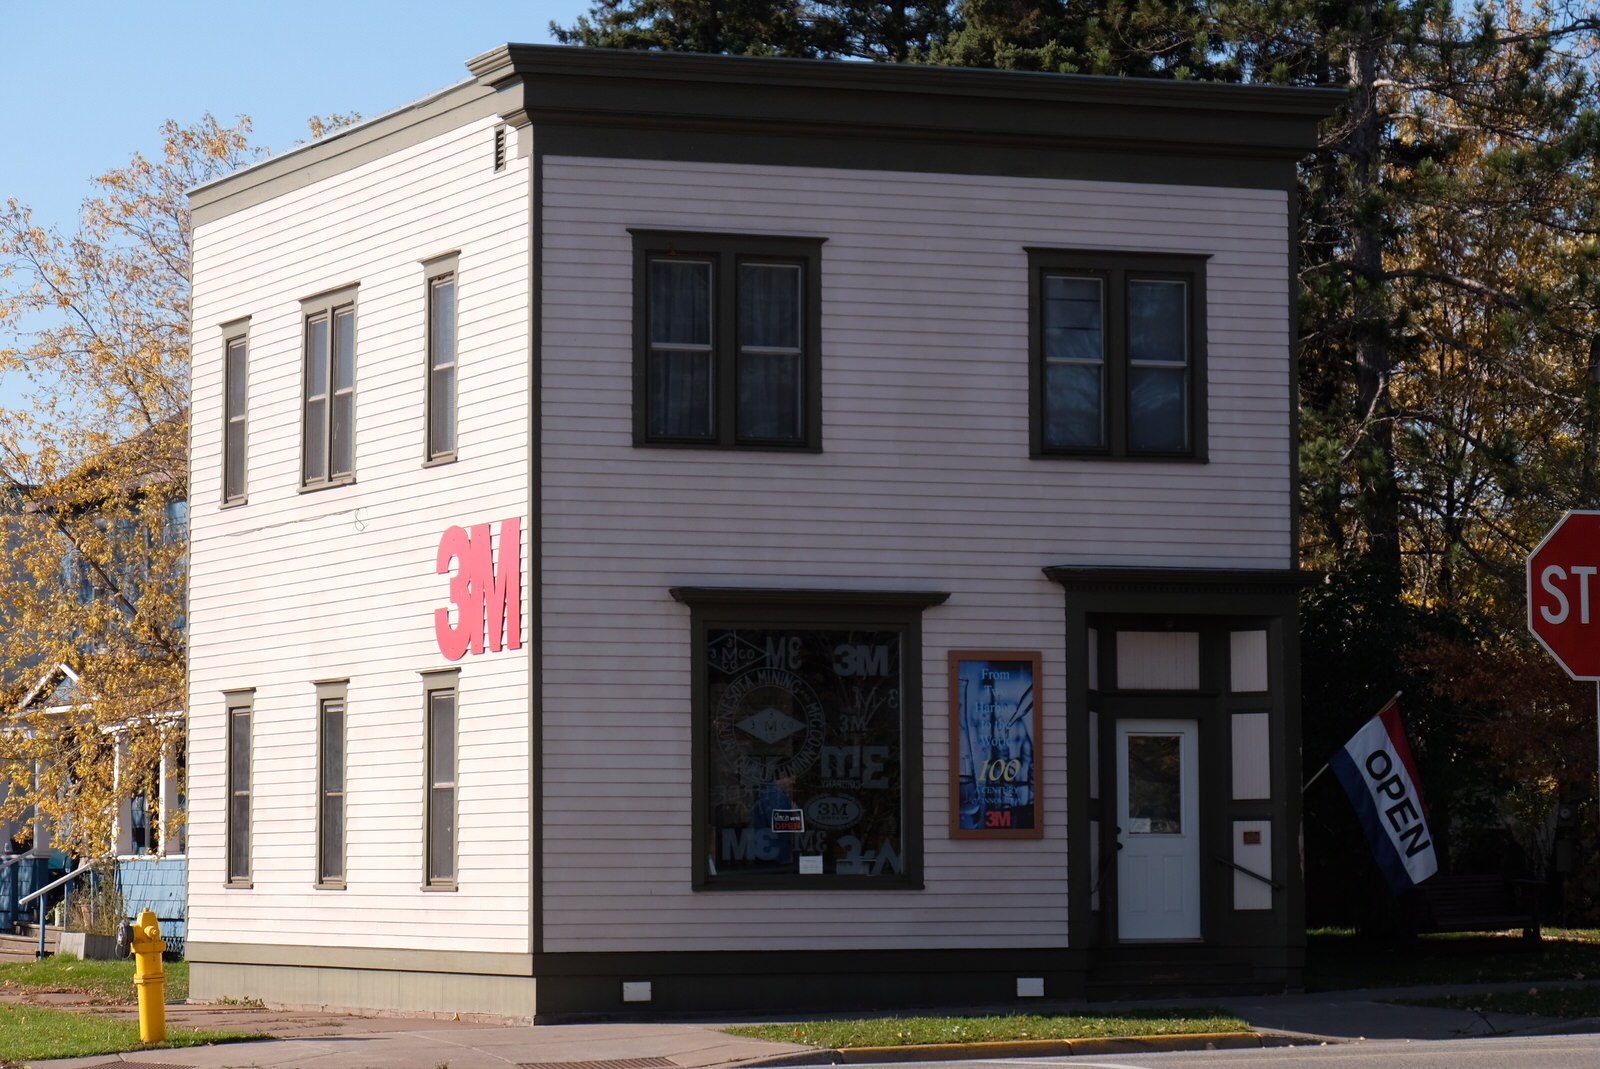 3M's founding location and company museum in Two Harbors, Minnesota.